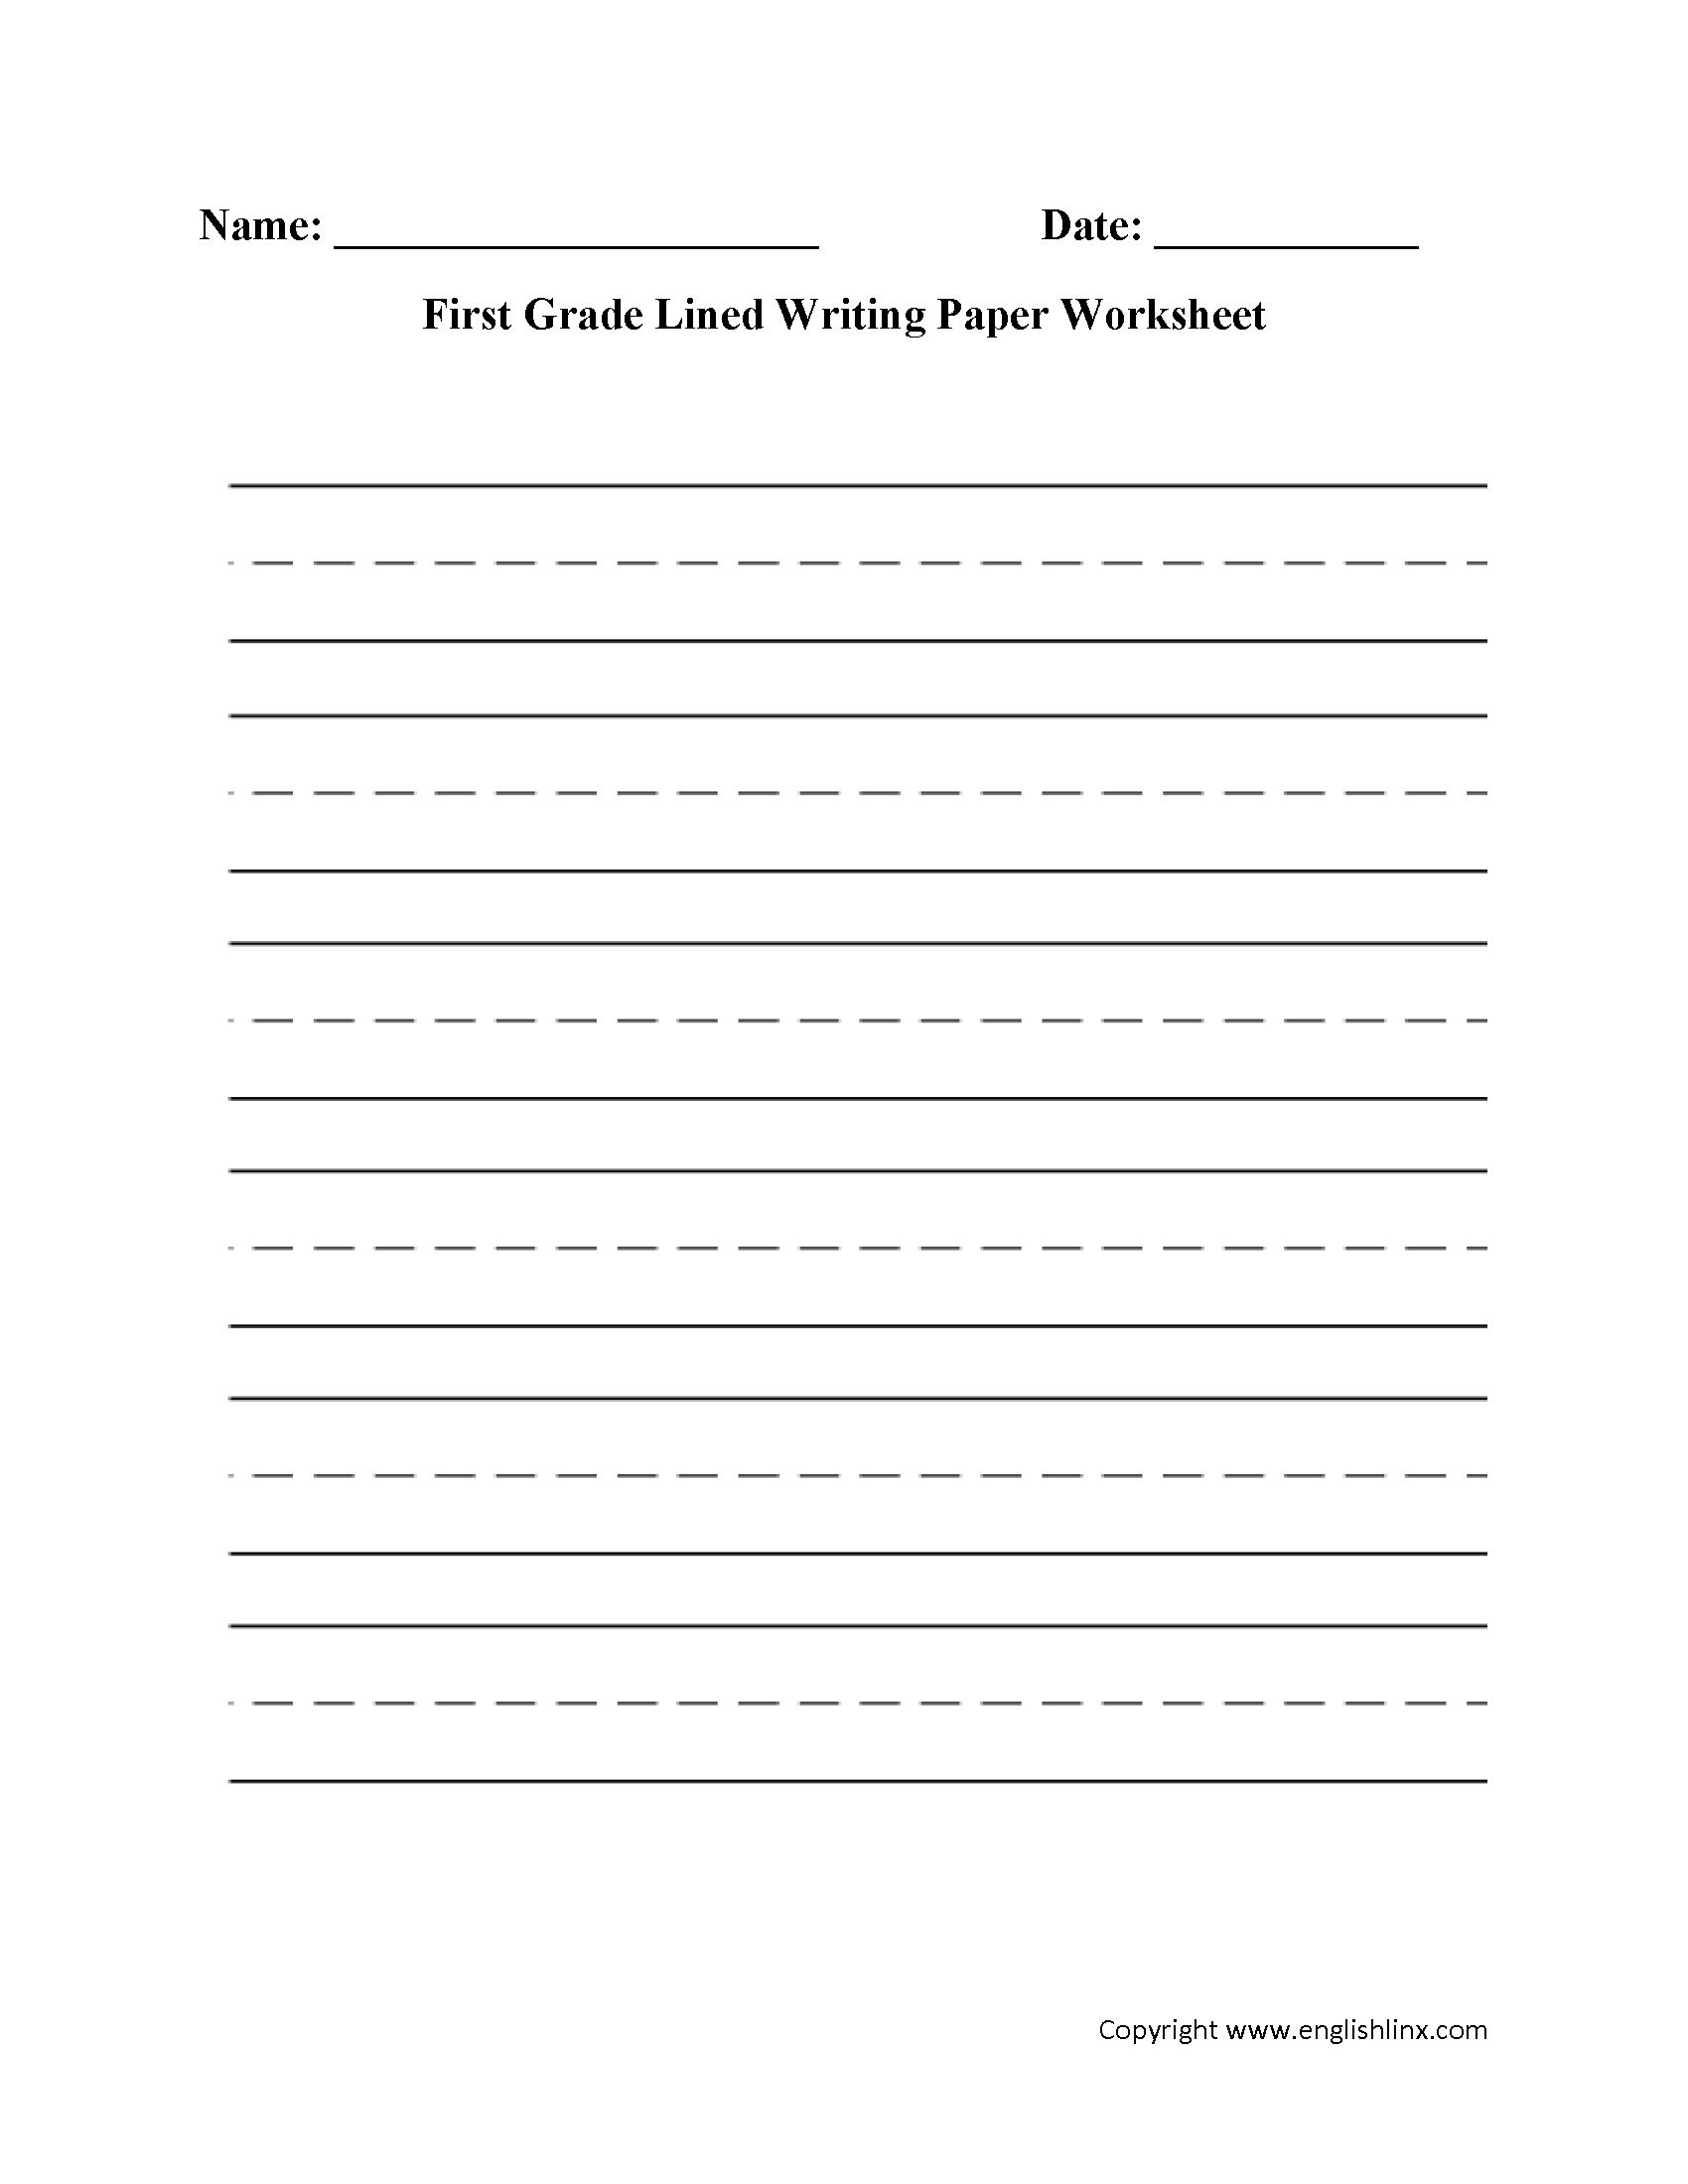 Handwriting Worksheet Elementary